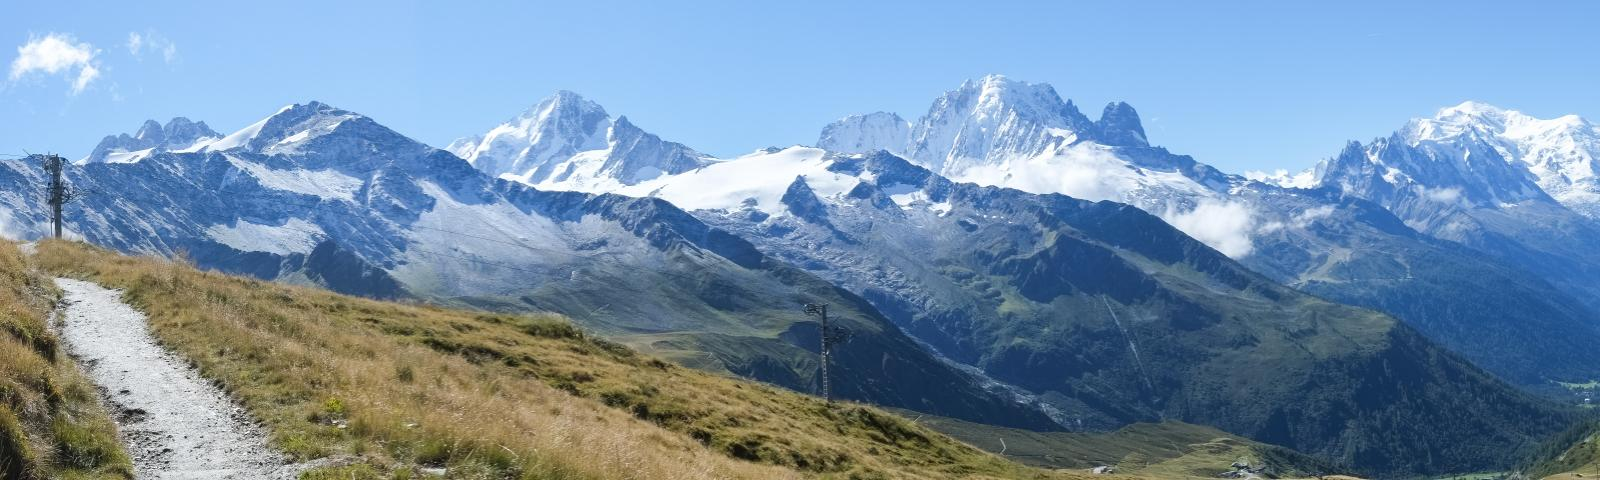 tour de mont blanc self guided